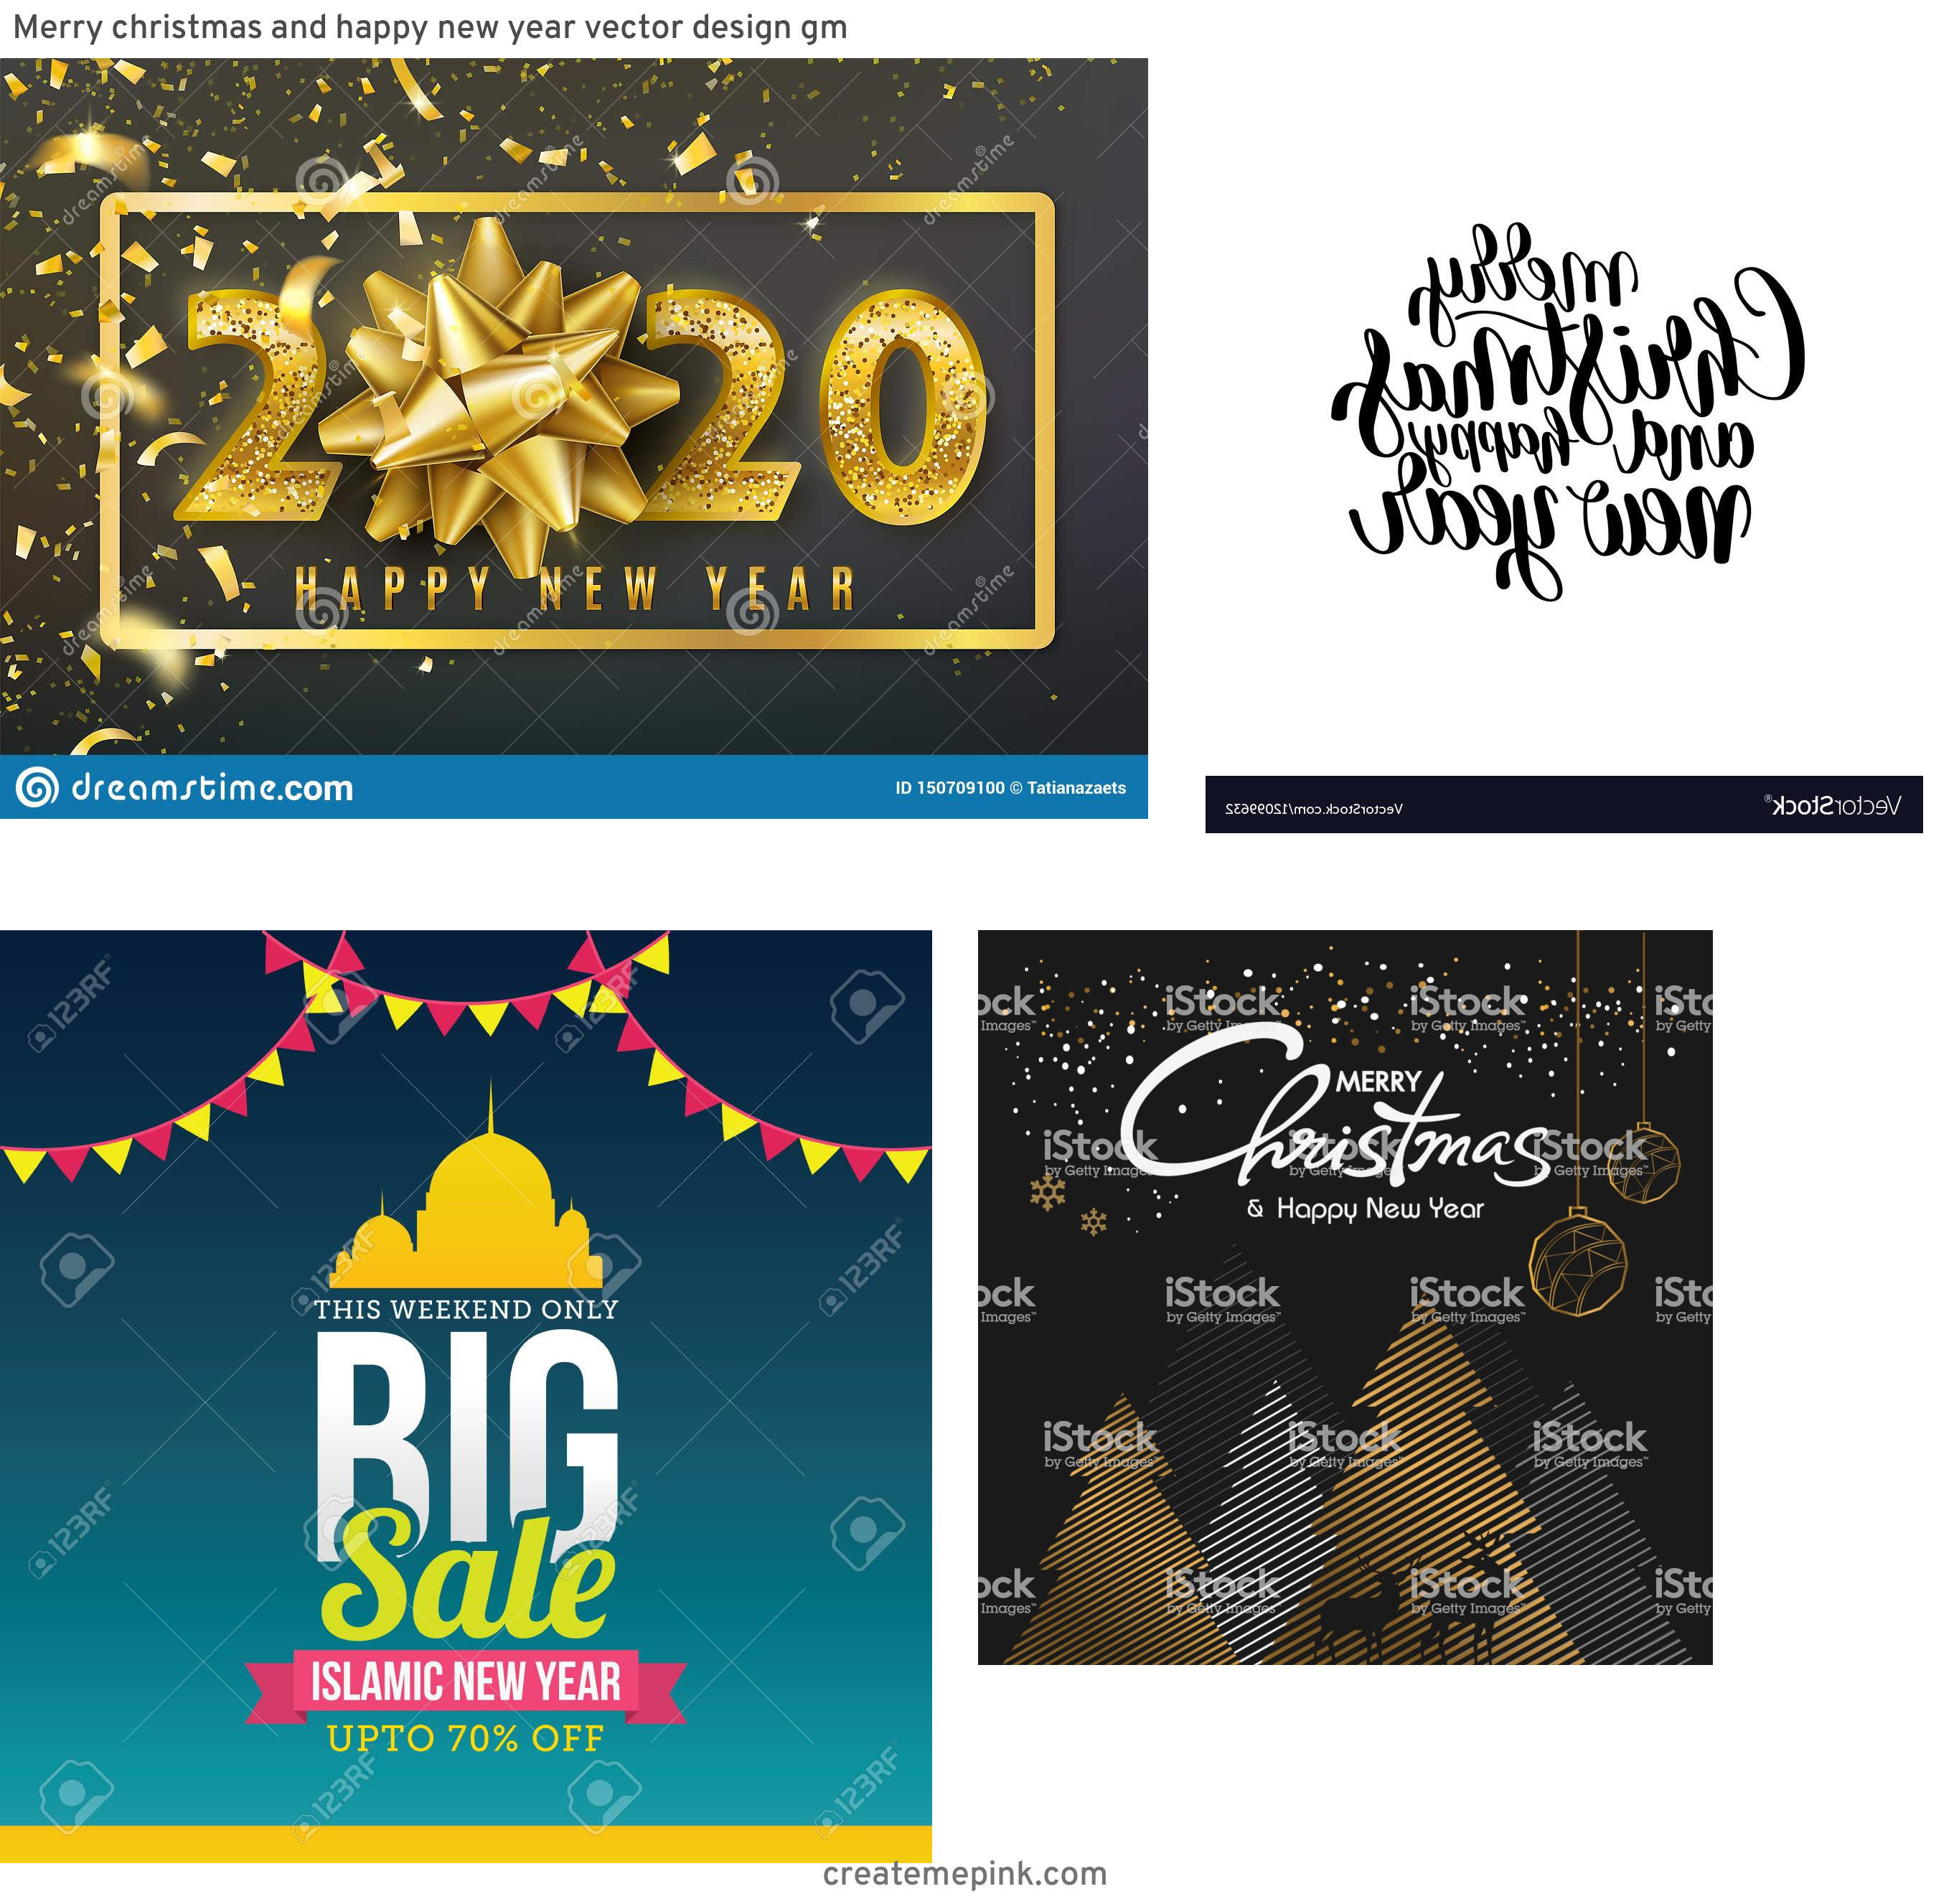 Free New Year Vector: Merry Christmas And Happy New Year Vector Design Gm